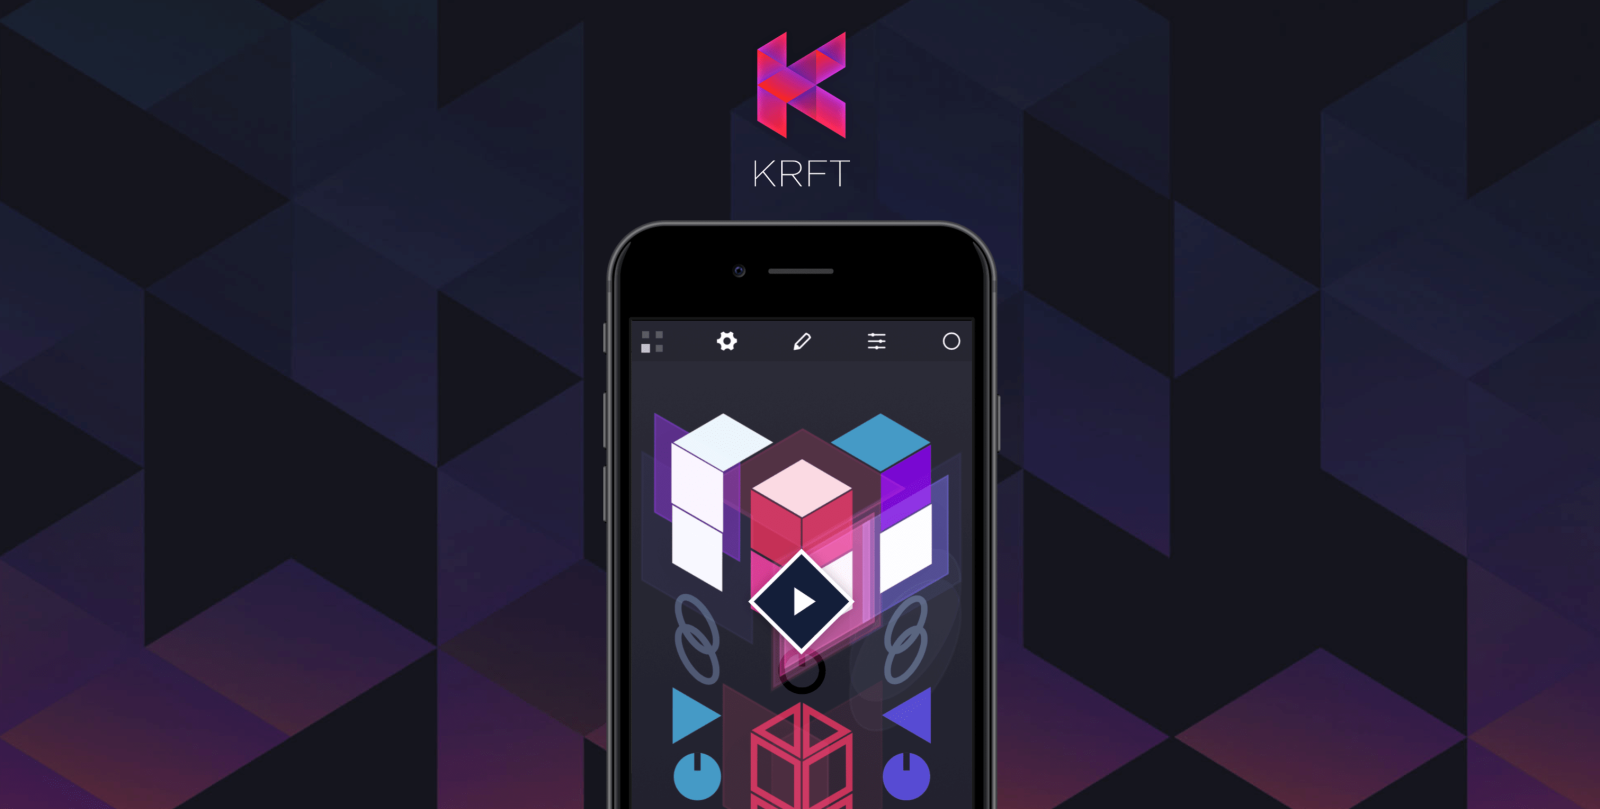 KRFT's modular music making & surfaces hit lowest price this year on